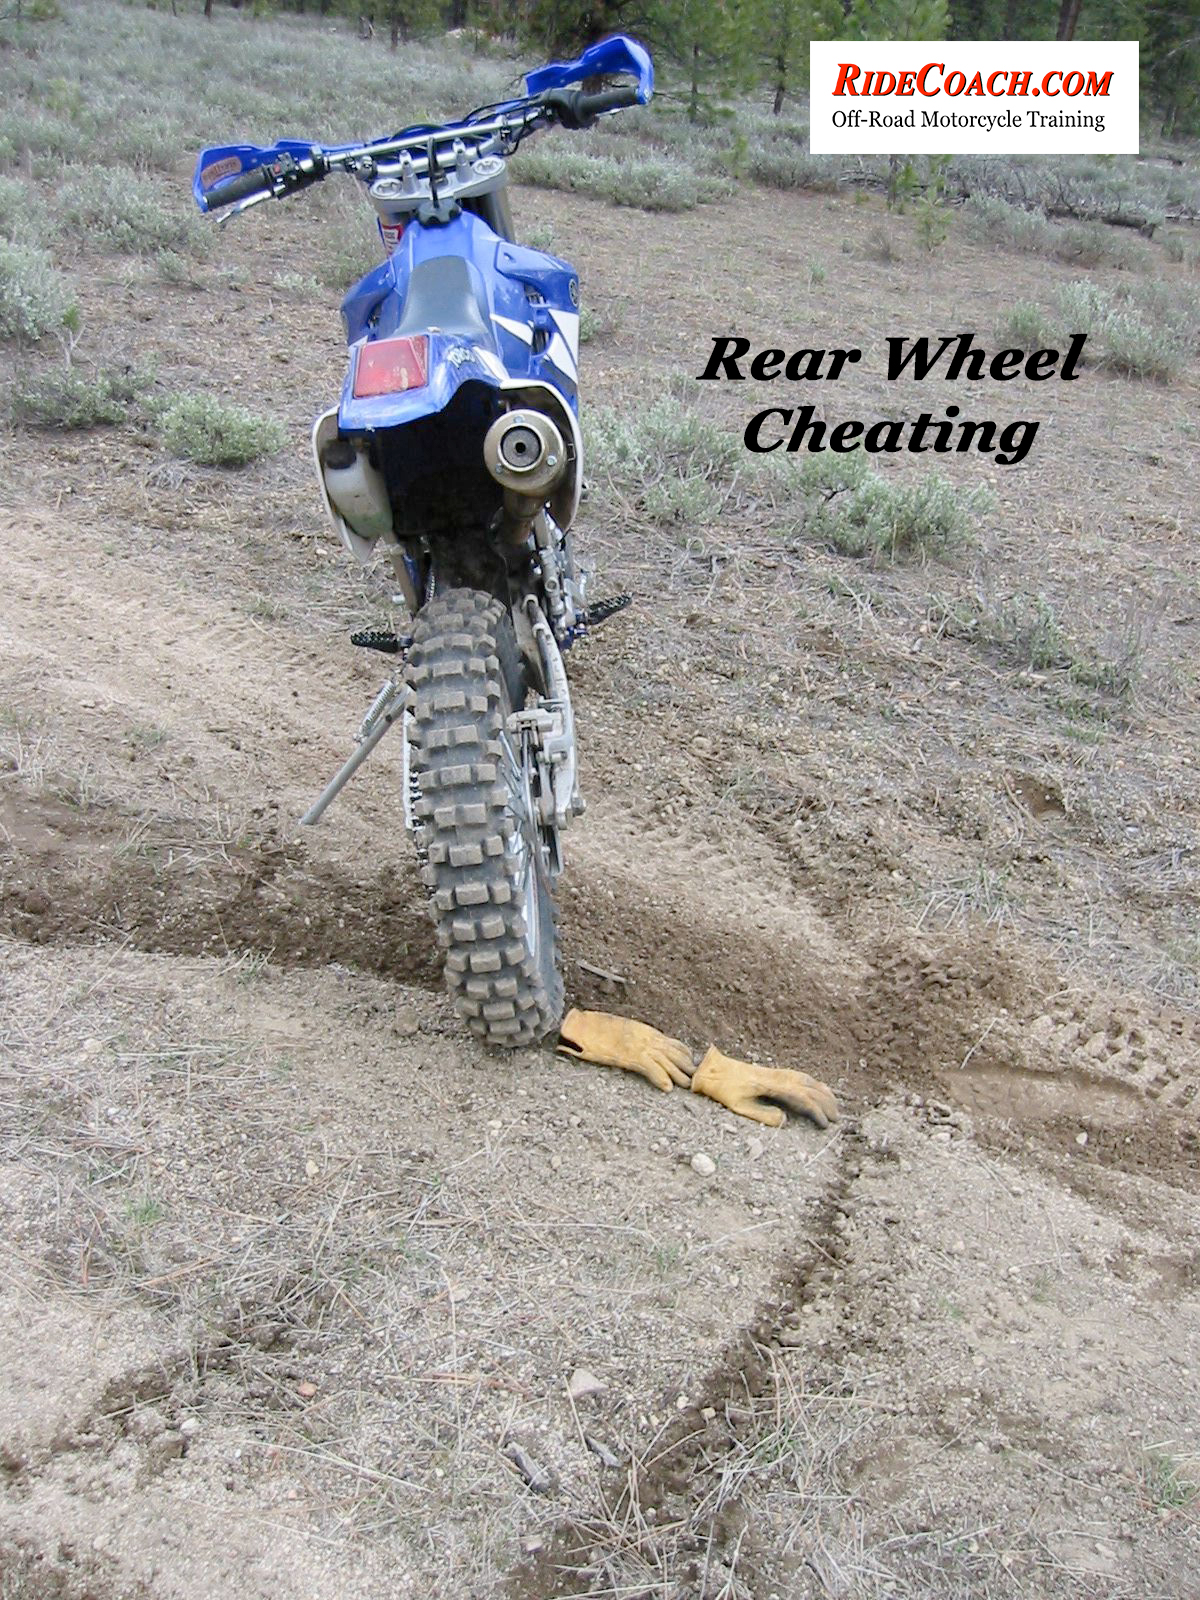 Rear-Wheel-Cheating-Coach-Ramey-Stroud-Adventure-Rider-Radio-Rider-Skills.jpg